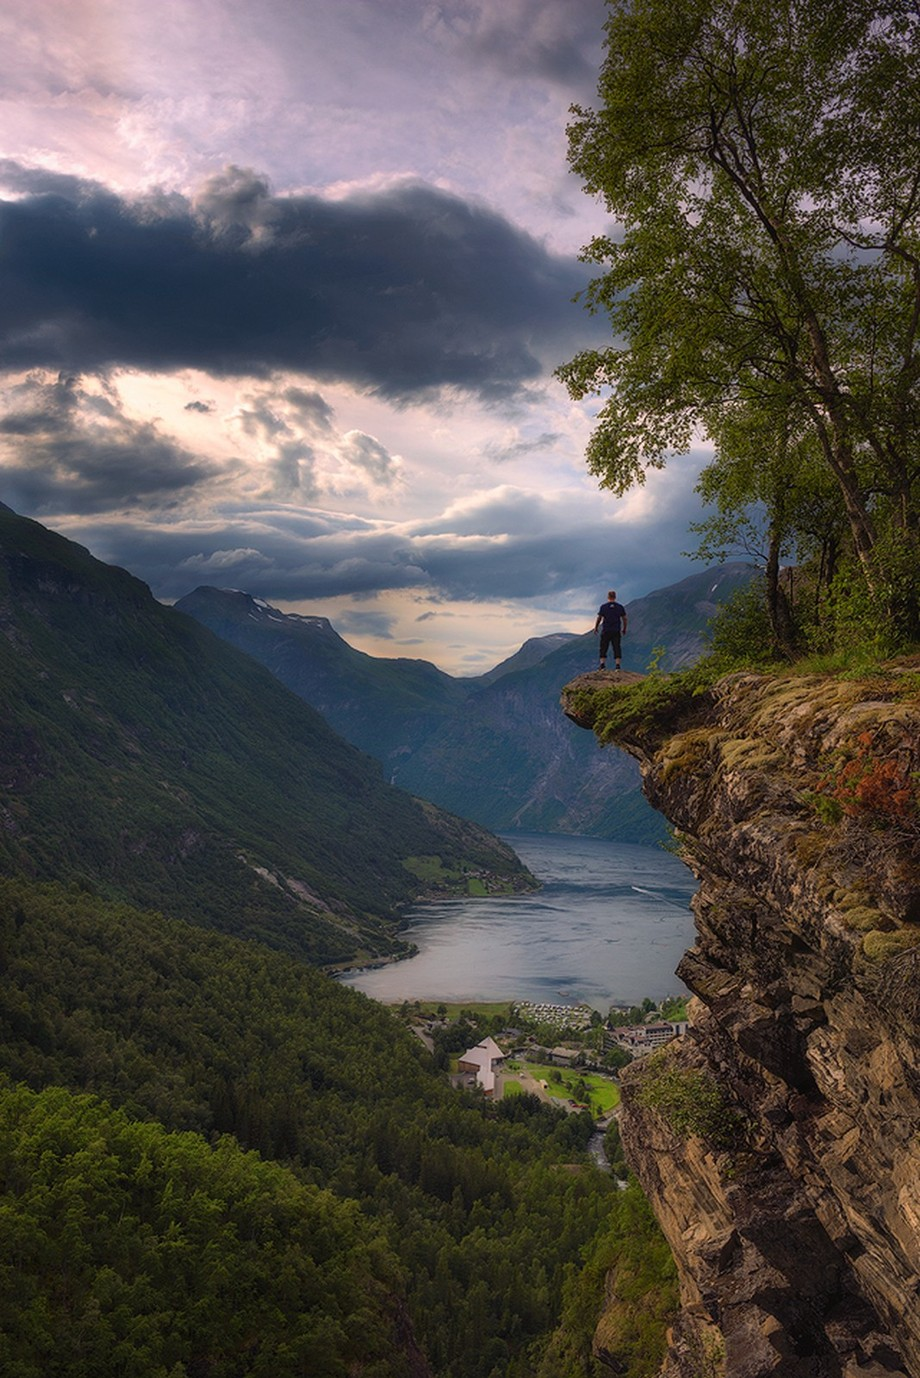 Flydalsjuvet by Tor-Ivar - People In Large Areas Photo Contest